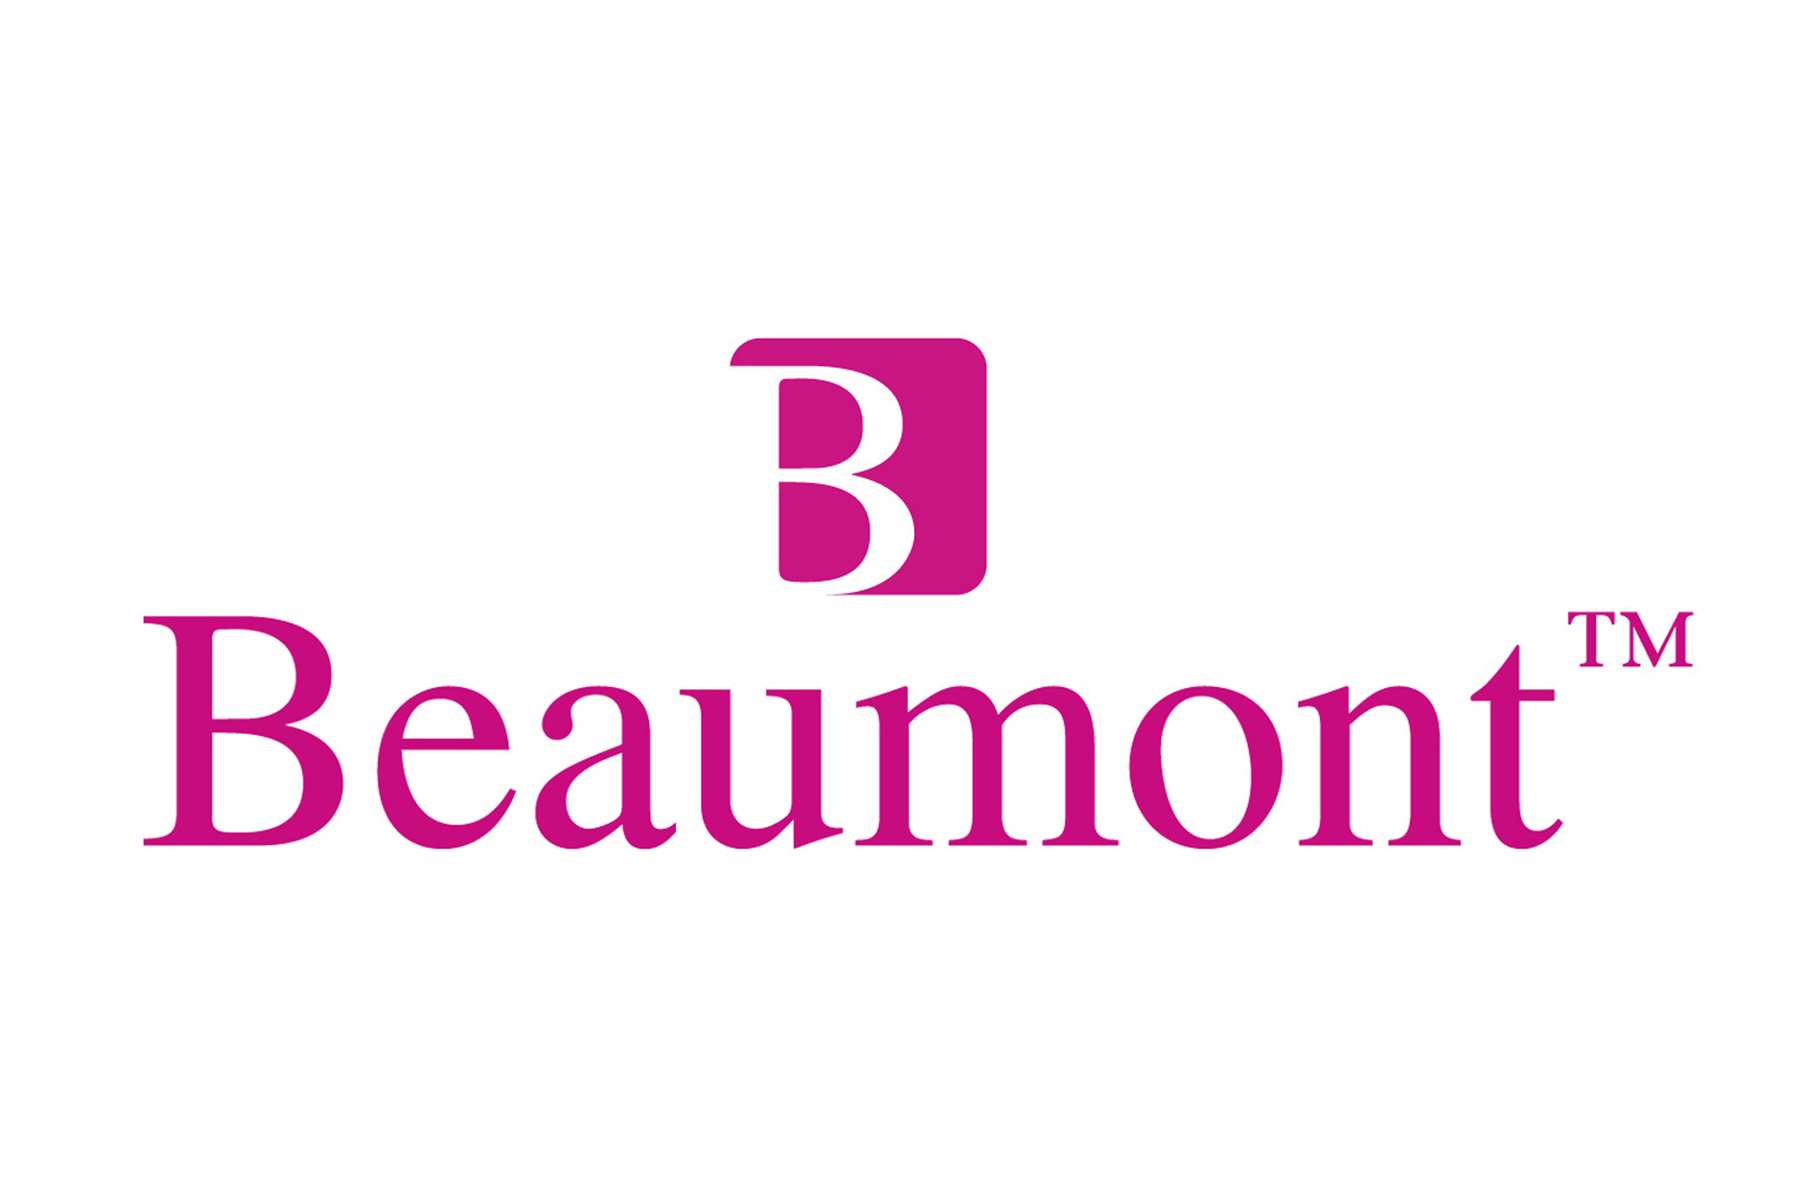 Read more on Beaumont